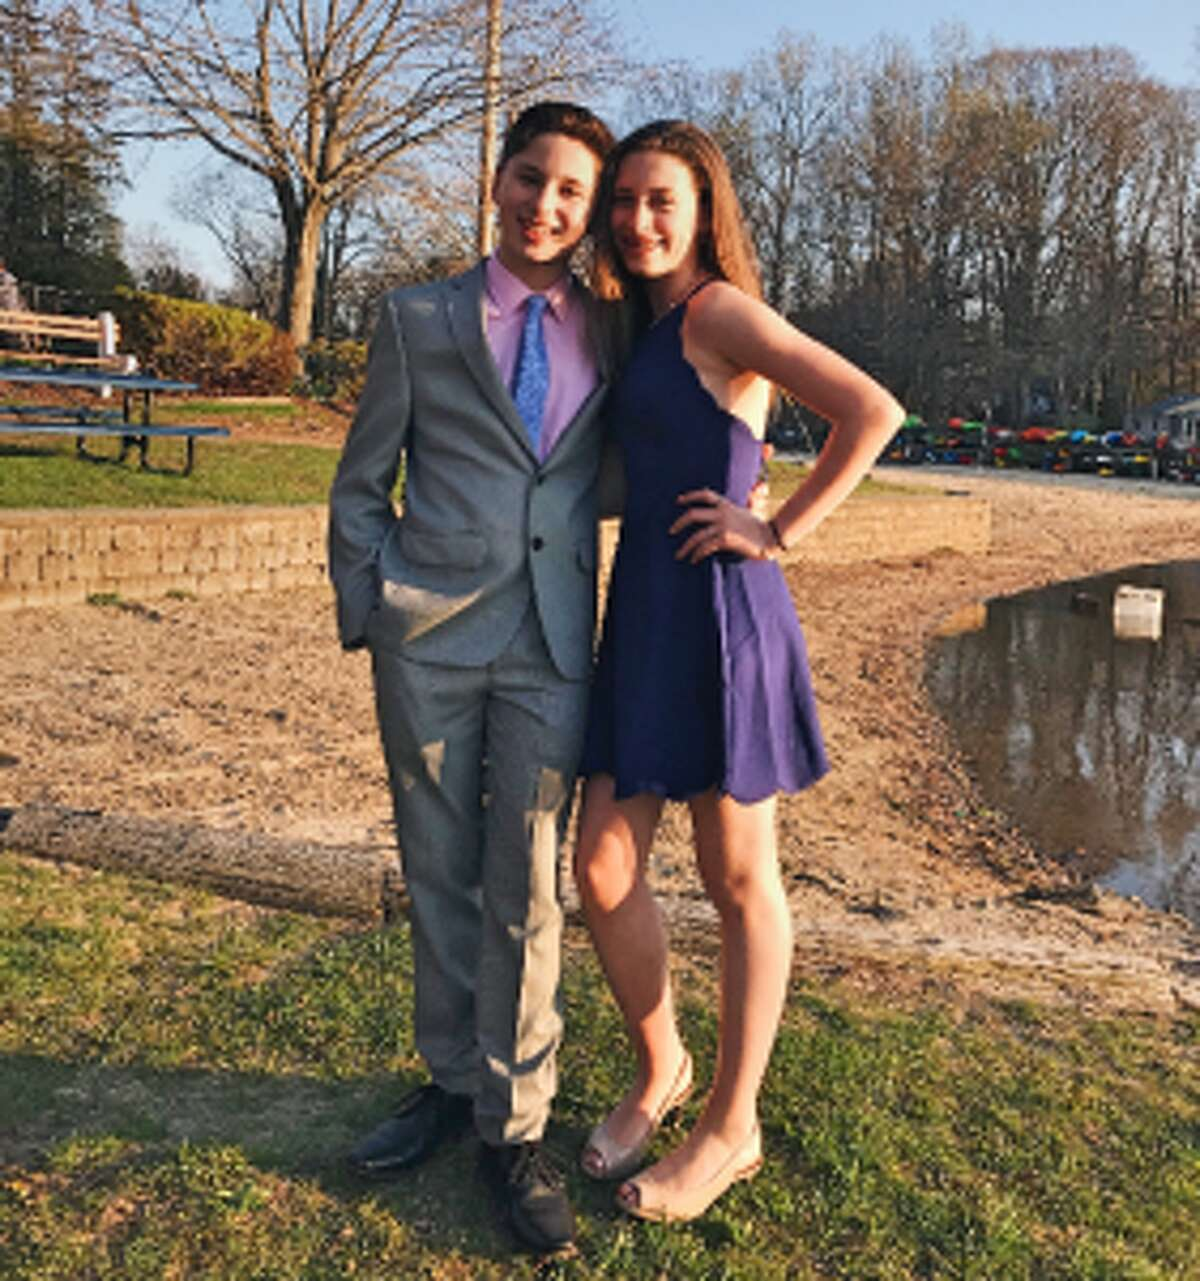 Olivia Lagano and Harrison Jarit hope to help support Charlie Capalbo and his family through a dance performance.